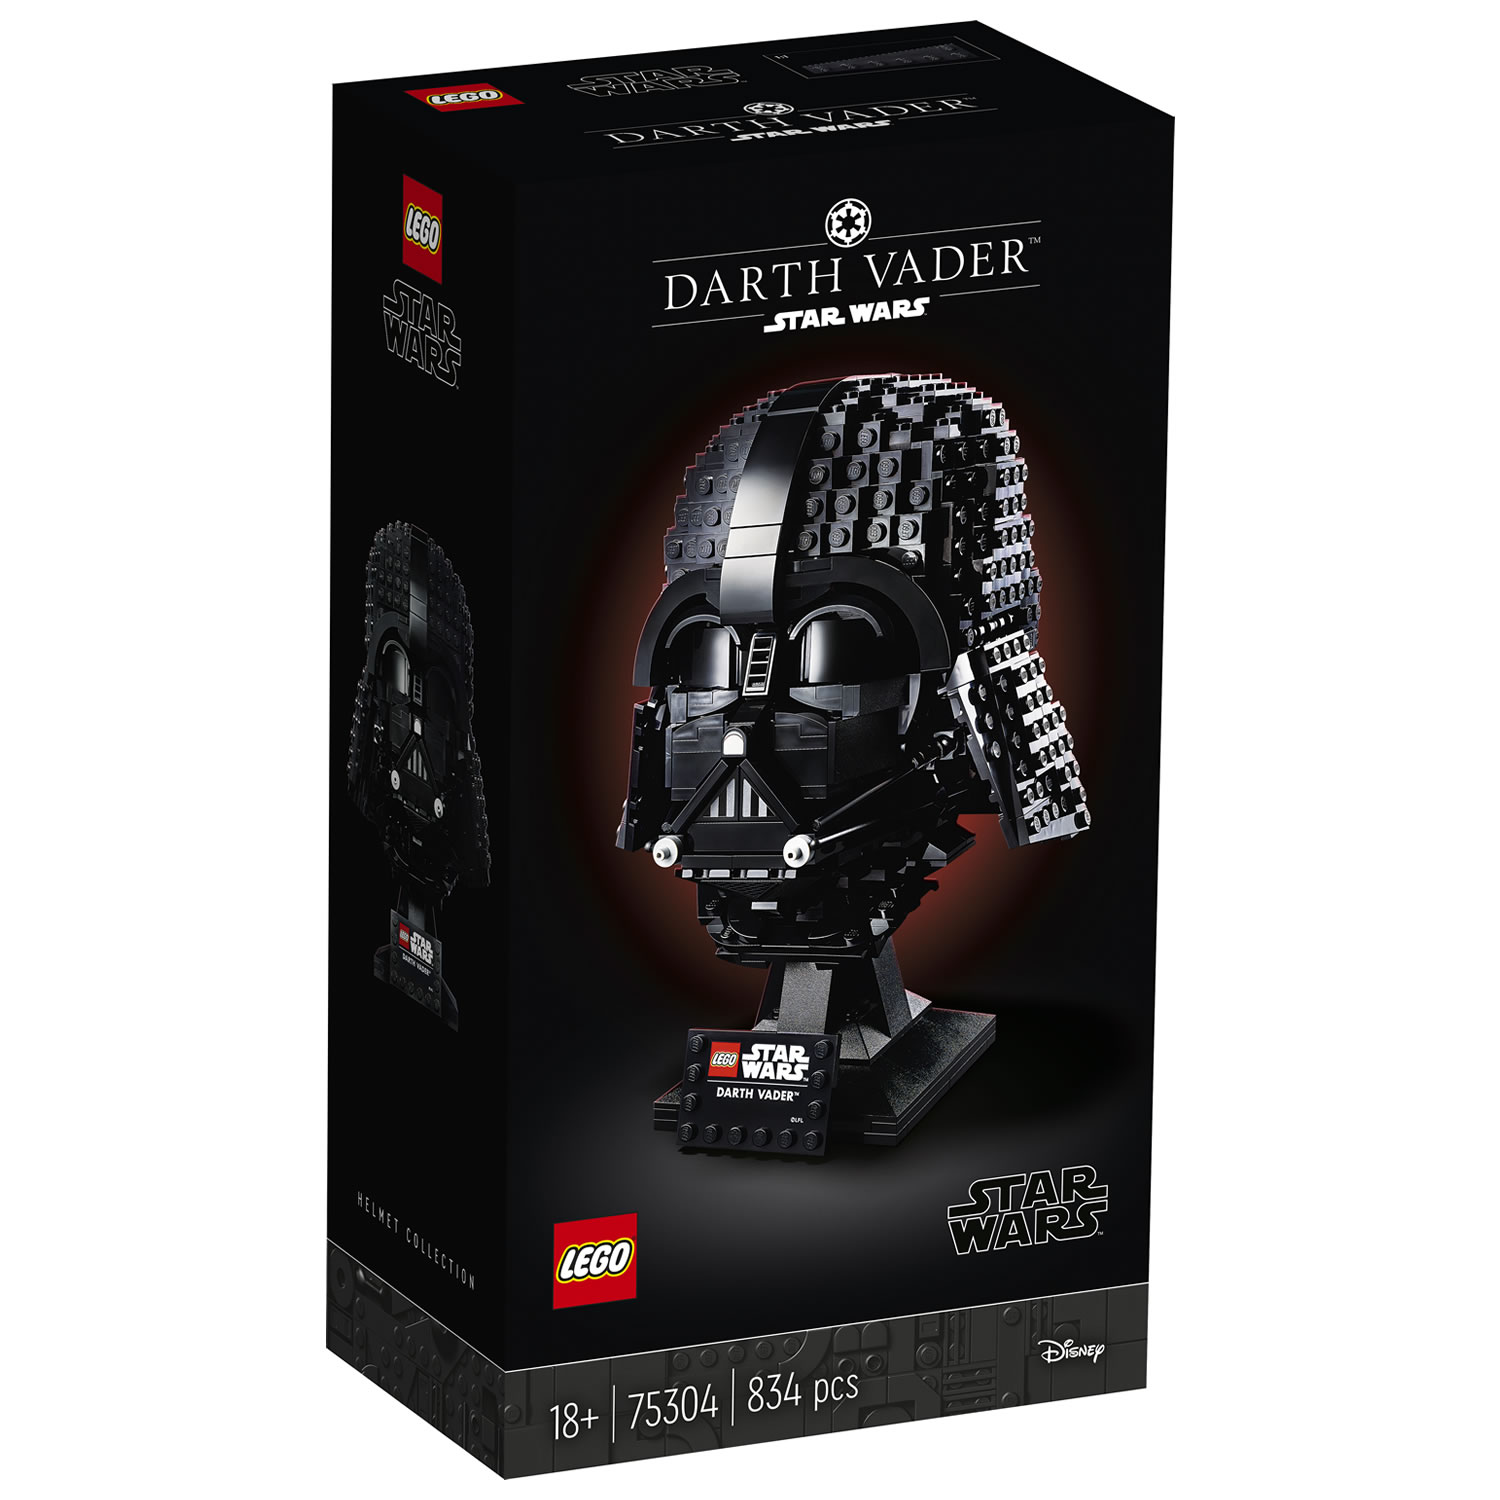 LEGO-Star-Wars-Darth-Vader-75304